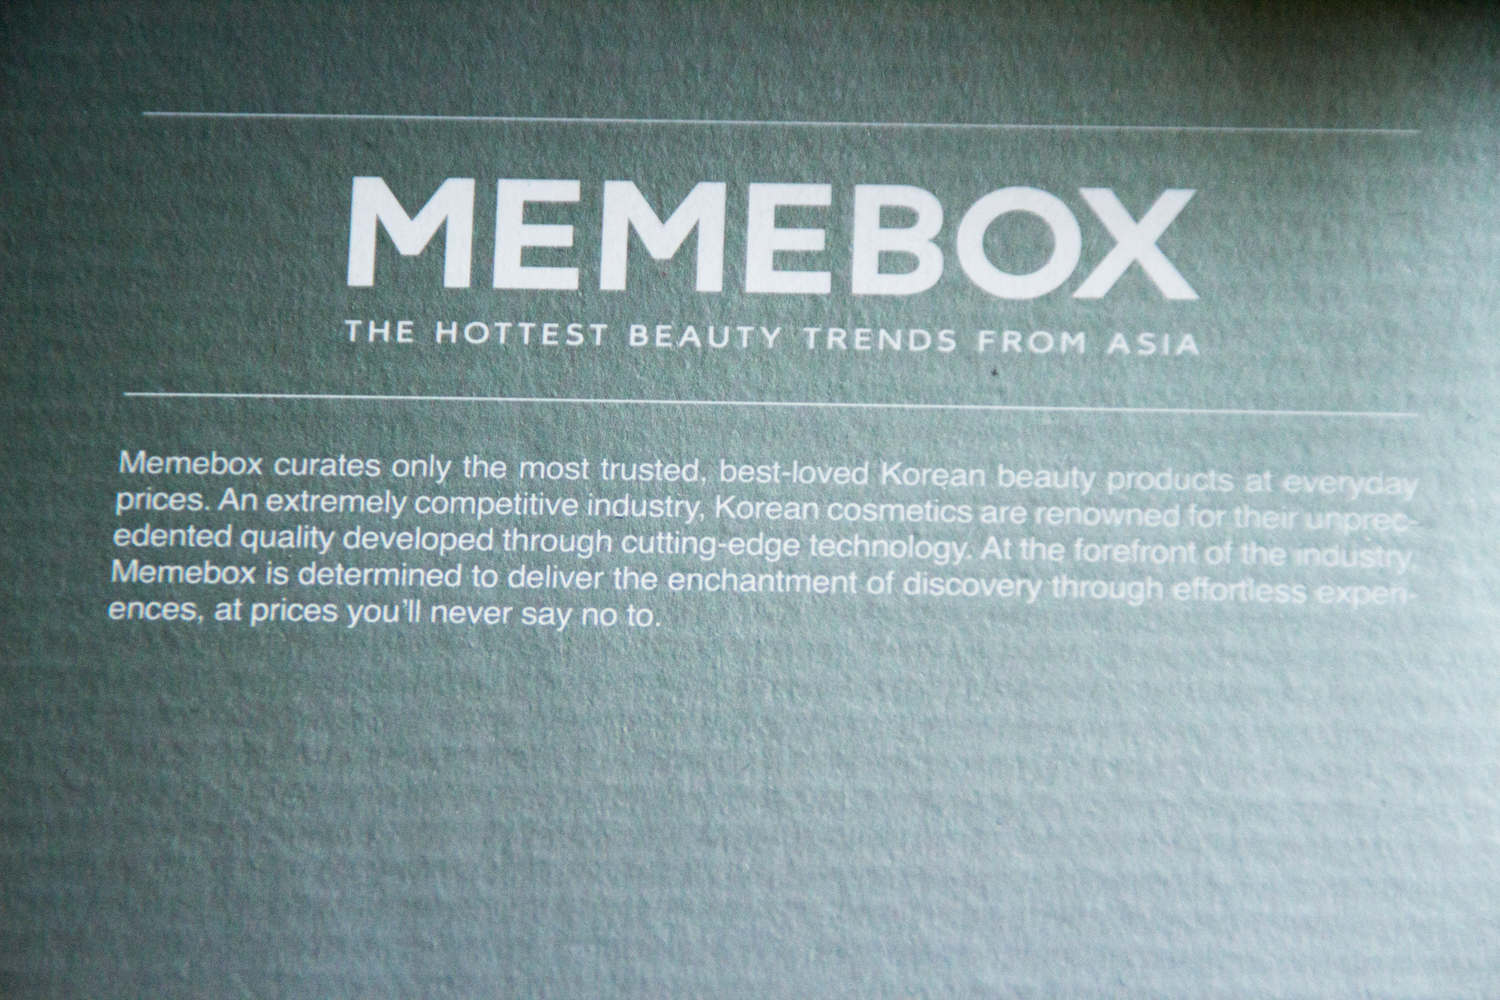 memebox-luckybox-koreas-most-wanted-3